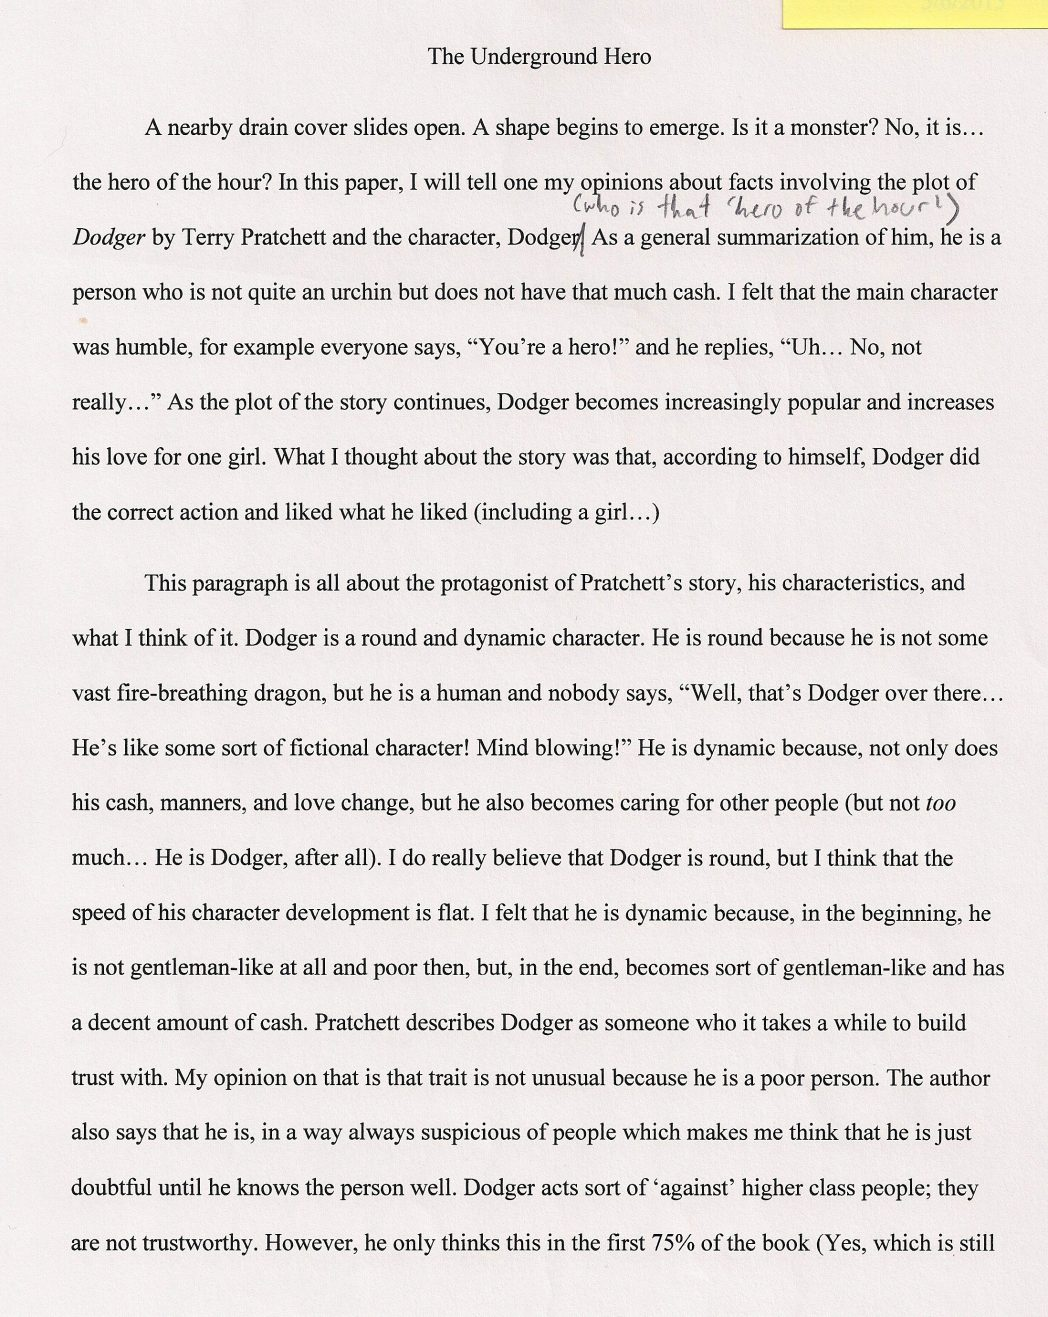 010 Satire Essay Global Warming On Heroes My Hero Essays How To Write An Argumentative The Undergro Persuasive About Study Mode Good Paper 1048x1317 Beautiful Outline Funny Topics Full